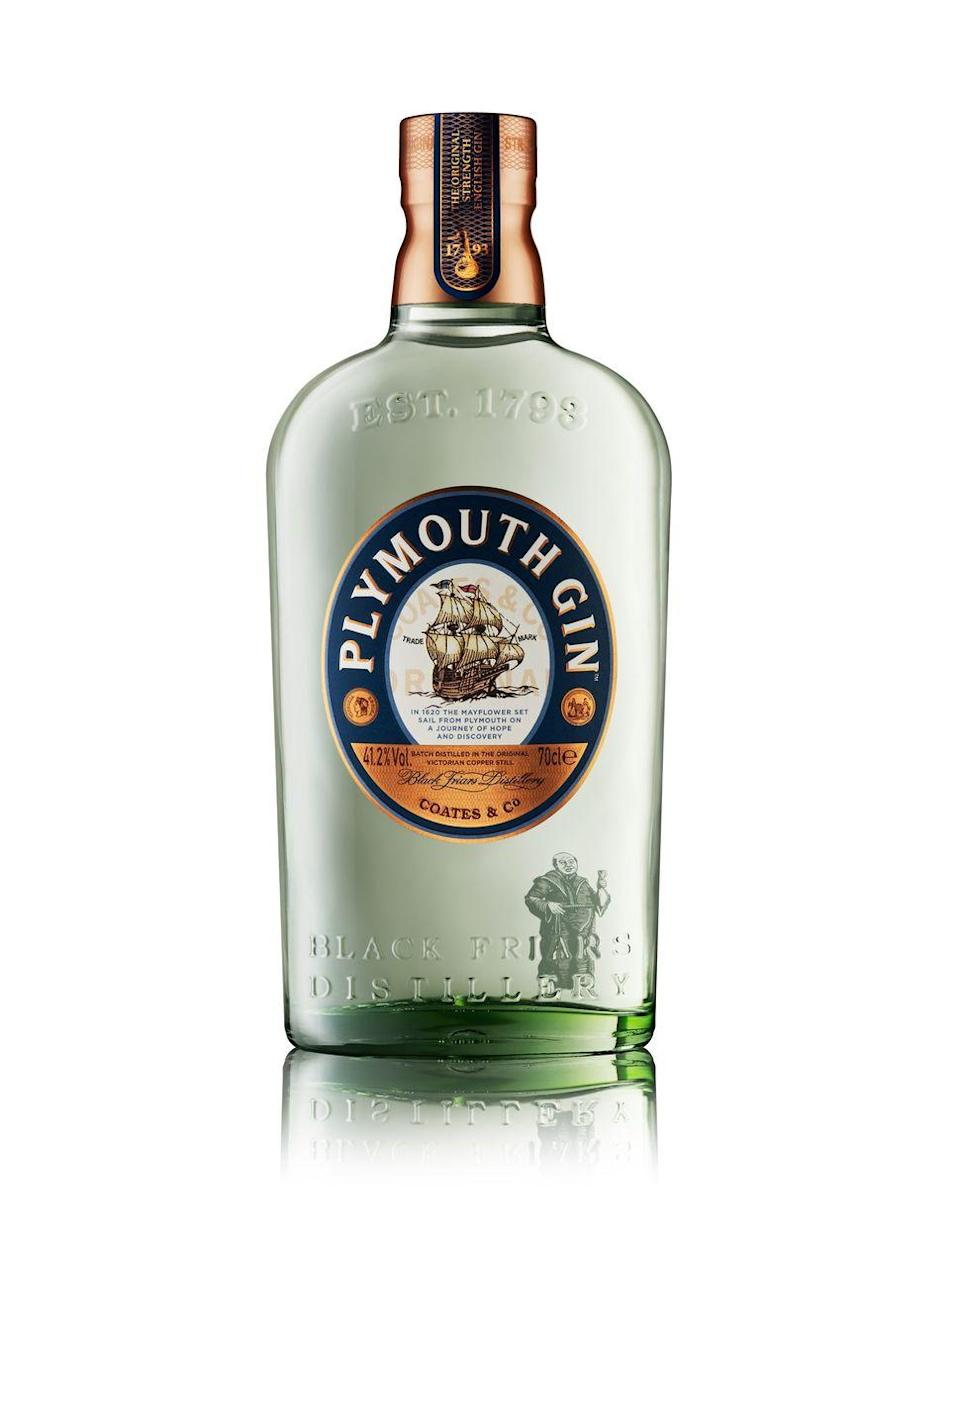 """<p>The oldest working gin distillery in England, <a href=""""https://www.plymouthgin.com/en-EN"""" rel=""""nofollow noopener"""" target=""""_blank"""" data-ylk=""""slk:Plymouth Gin"""" class=""""link rapid-noclick-resp"""">Plymouth Gin</a> has used the same recipe since 1793. The scent is fresh and clean when you first pop open the bottle. On tasting, the gin is warming and very smooth. The botanicals include coriander seeds, lemon peel, angelica root and green cardamom. There is also a navy-strength gin available, a sloe gin and a fruit cup. </p><p>Pair it with <a href=""""https://artisandrinks.com/drinks/pink-citrus-tonic/"""" rel=""""nofollow noopener"""" target=""""_blank"""" data-ylk=""""slk:Artisan Drinks Pink Citrus tonic"""" class=""""link rapid-noclick-resp"""">Artisan Drinks Pink Citrus tonic</a>. The zesty citrus flavour of blood orange and lemon in this award-winning mixer gives the G&T a tasty tang.</p>"""